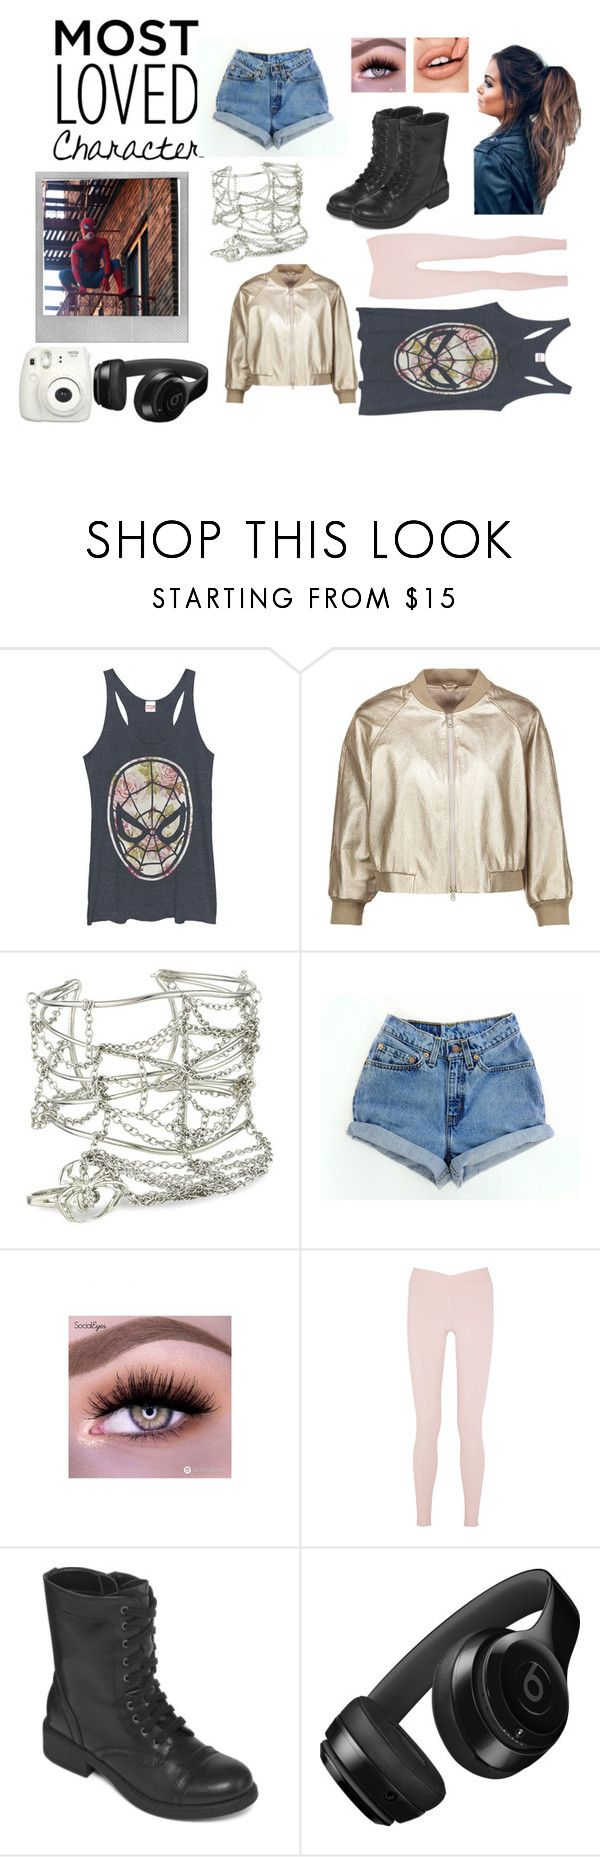 """""""Peter Parker~Themed Set"""" by x-emily-herondale-x ❤ liked on Polyvore featuring Marvel, Brunello Cucinelli, Marvel Comics, Live the Process, Arizona, Beats by Dr. Dre, Polaroid and Fujifilm"""